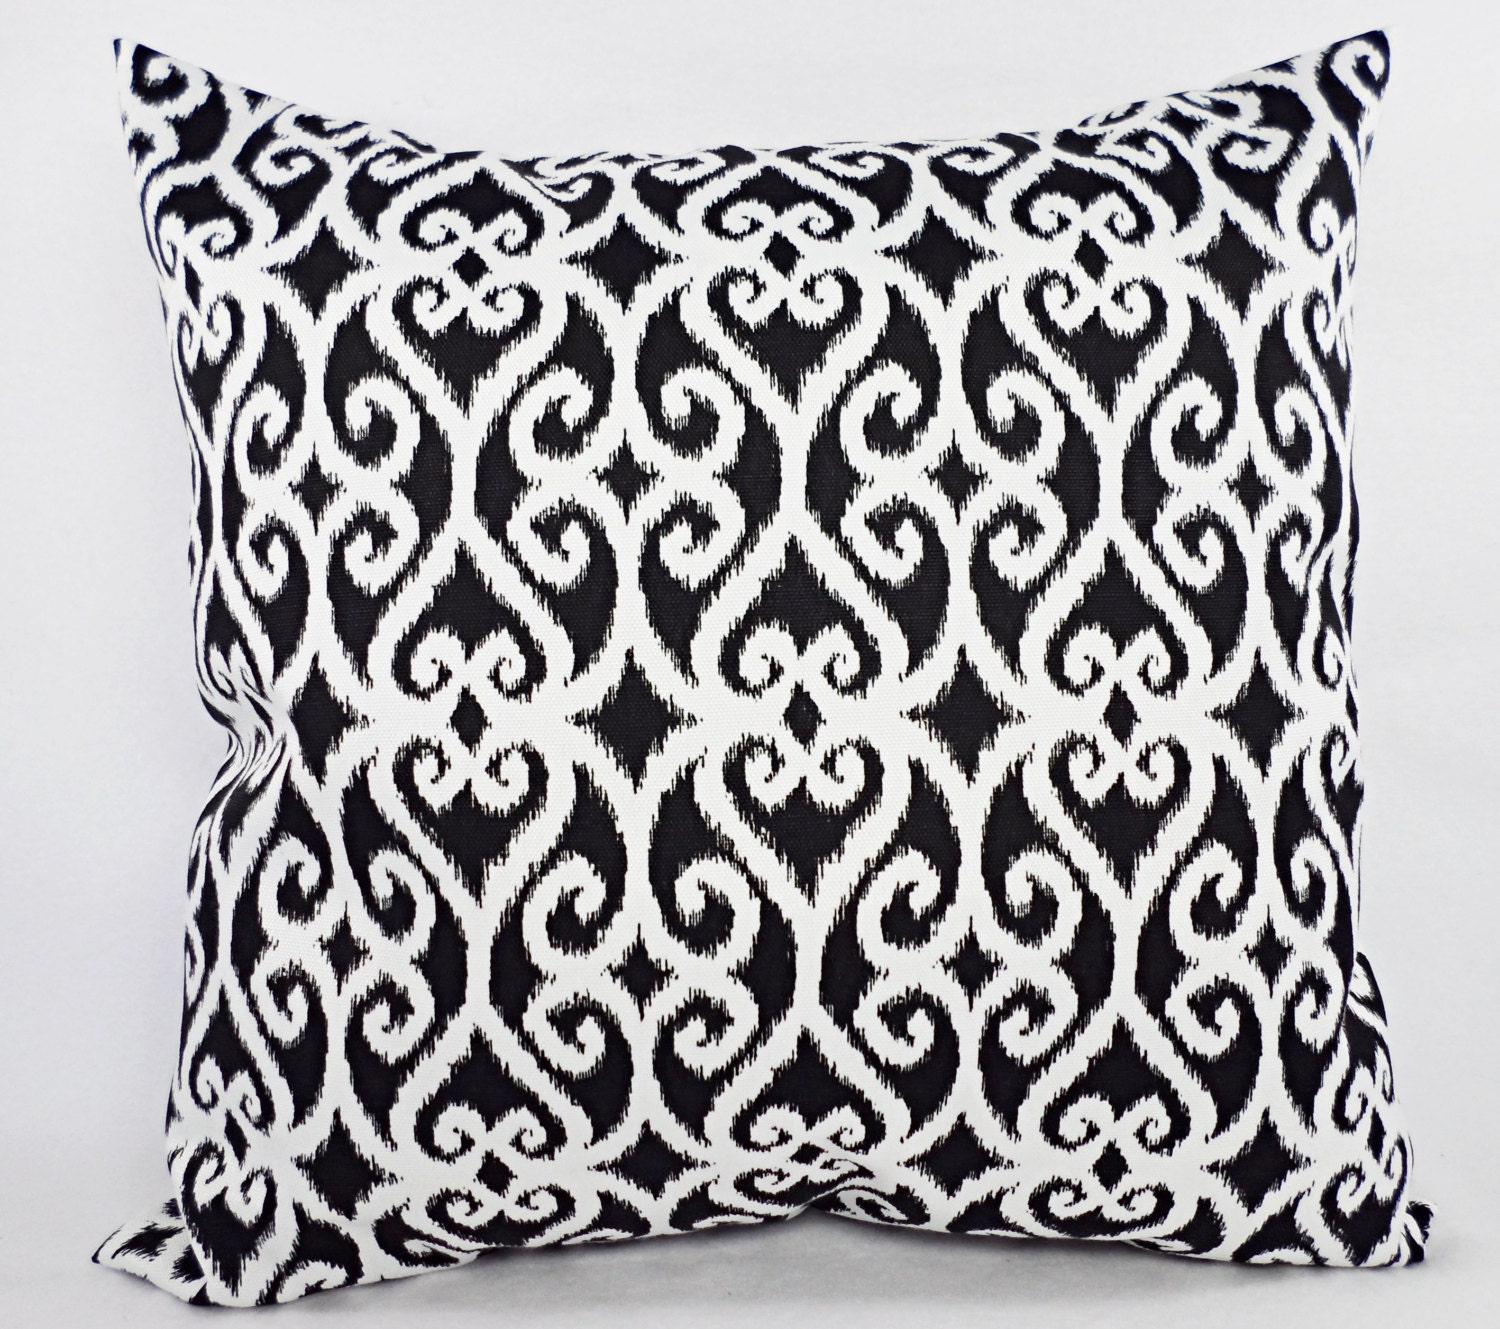 Clearance Patio Throw Pillows : Outdoor Pillows Clearance